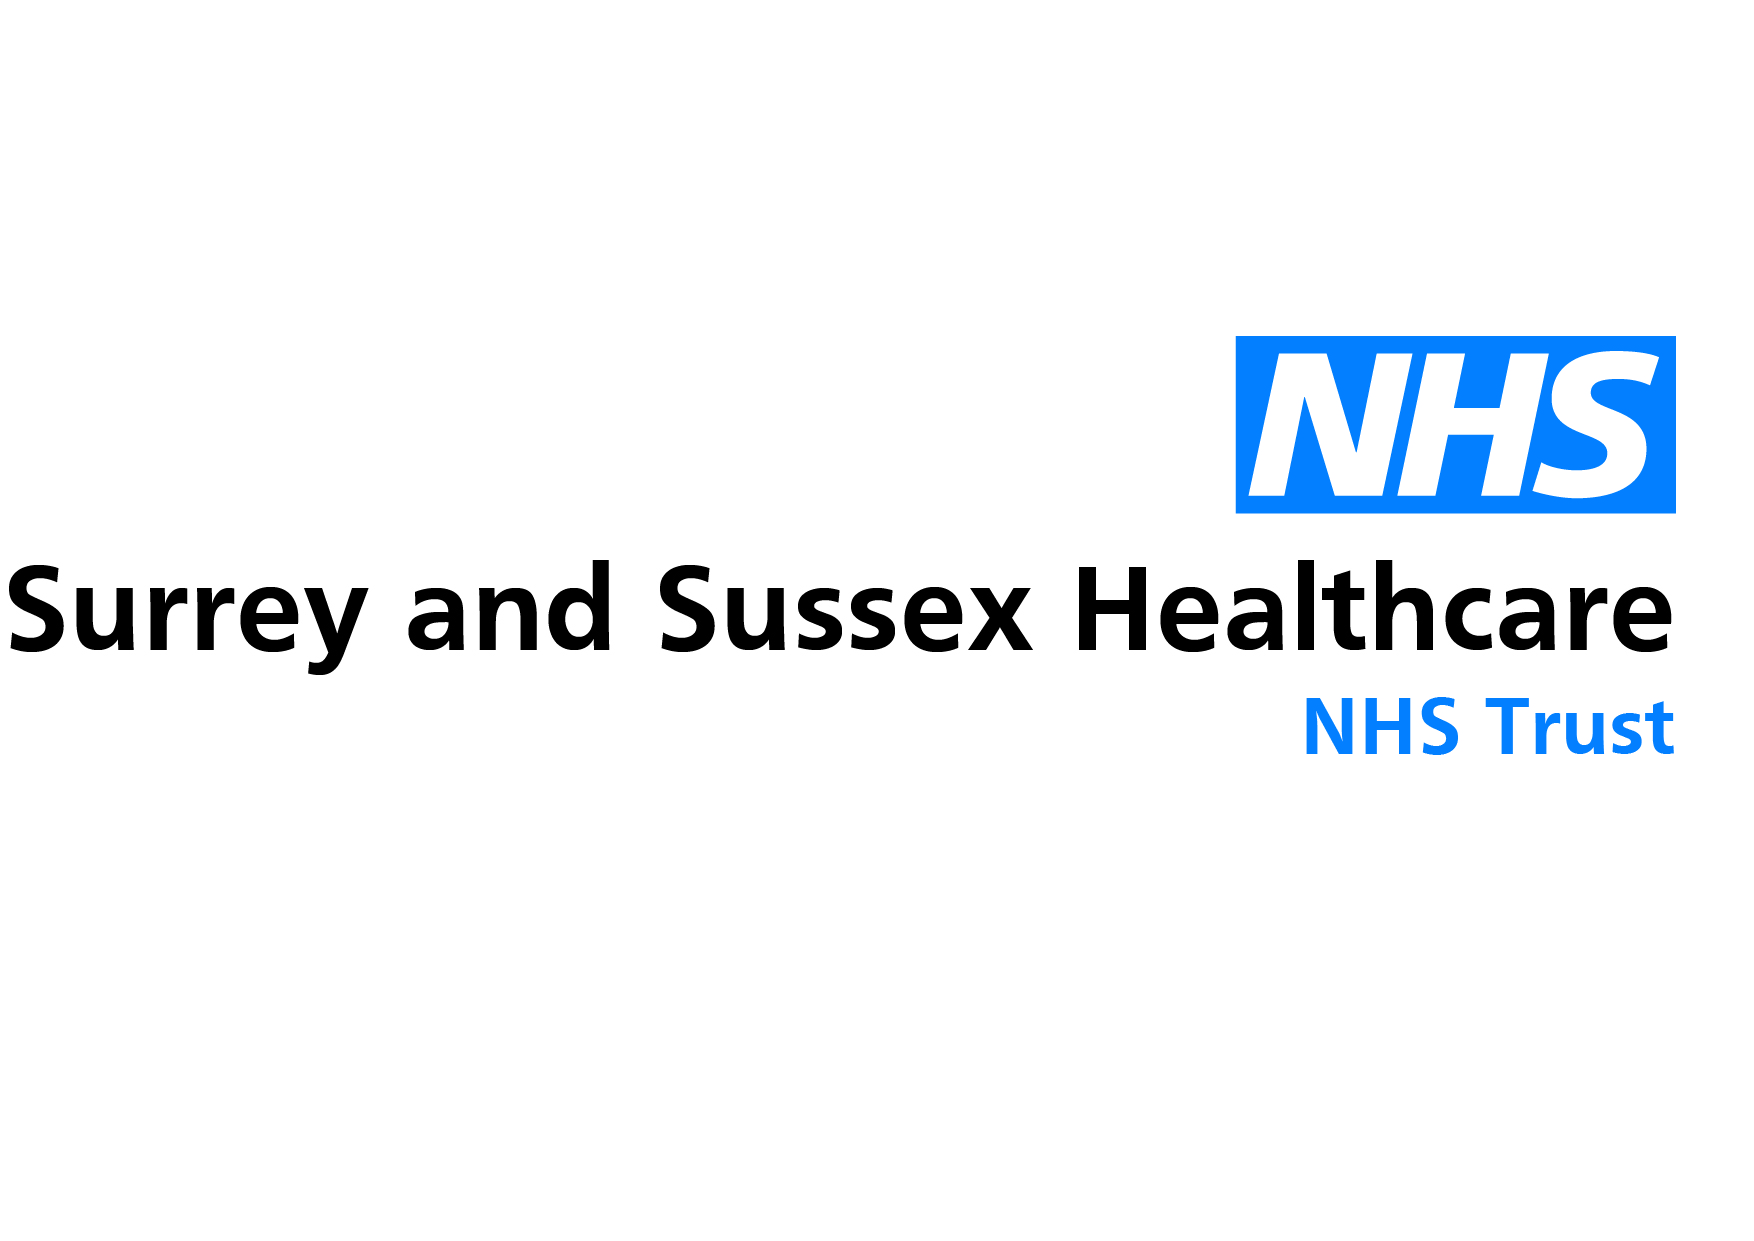 Surrey and Sussex Healthcare NHS Logo